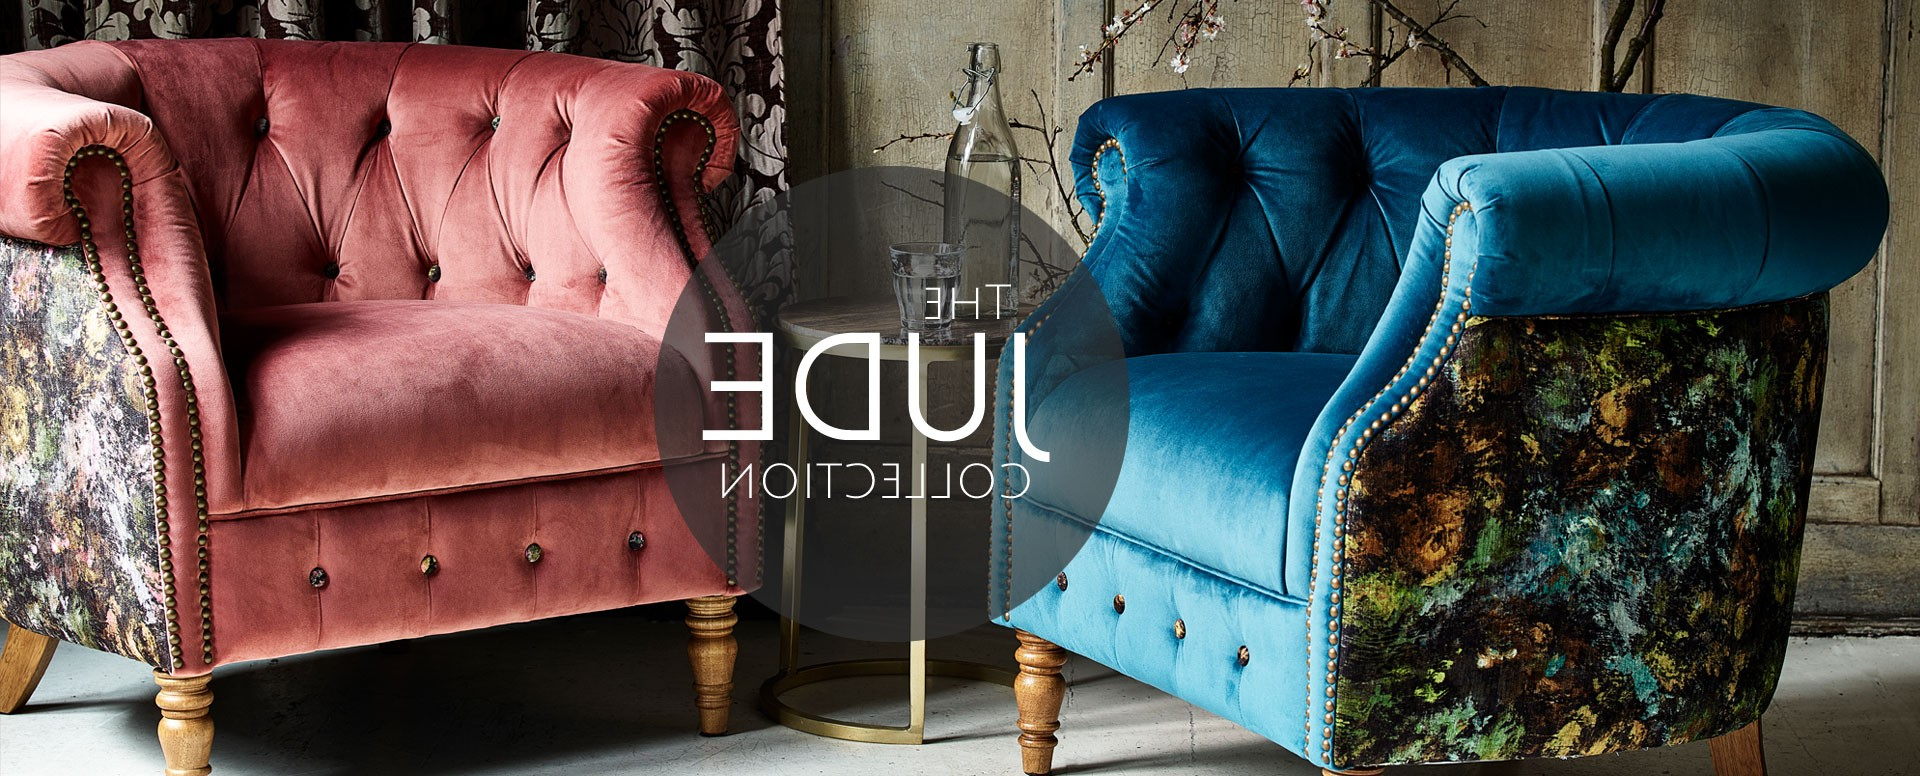 Alexander & James – Great British Sofas & Chairs – Furniture Intended For Newest James Armchairs (View 19 of 20)